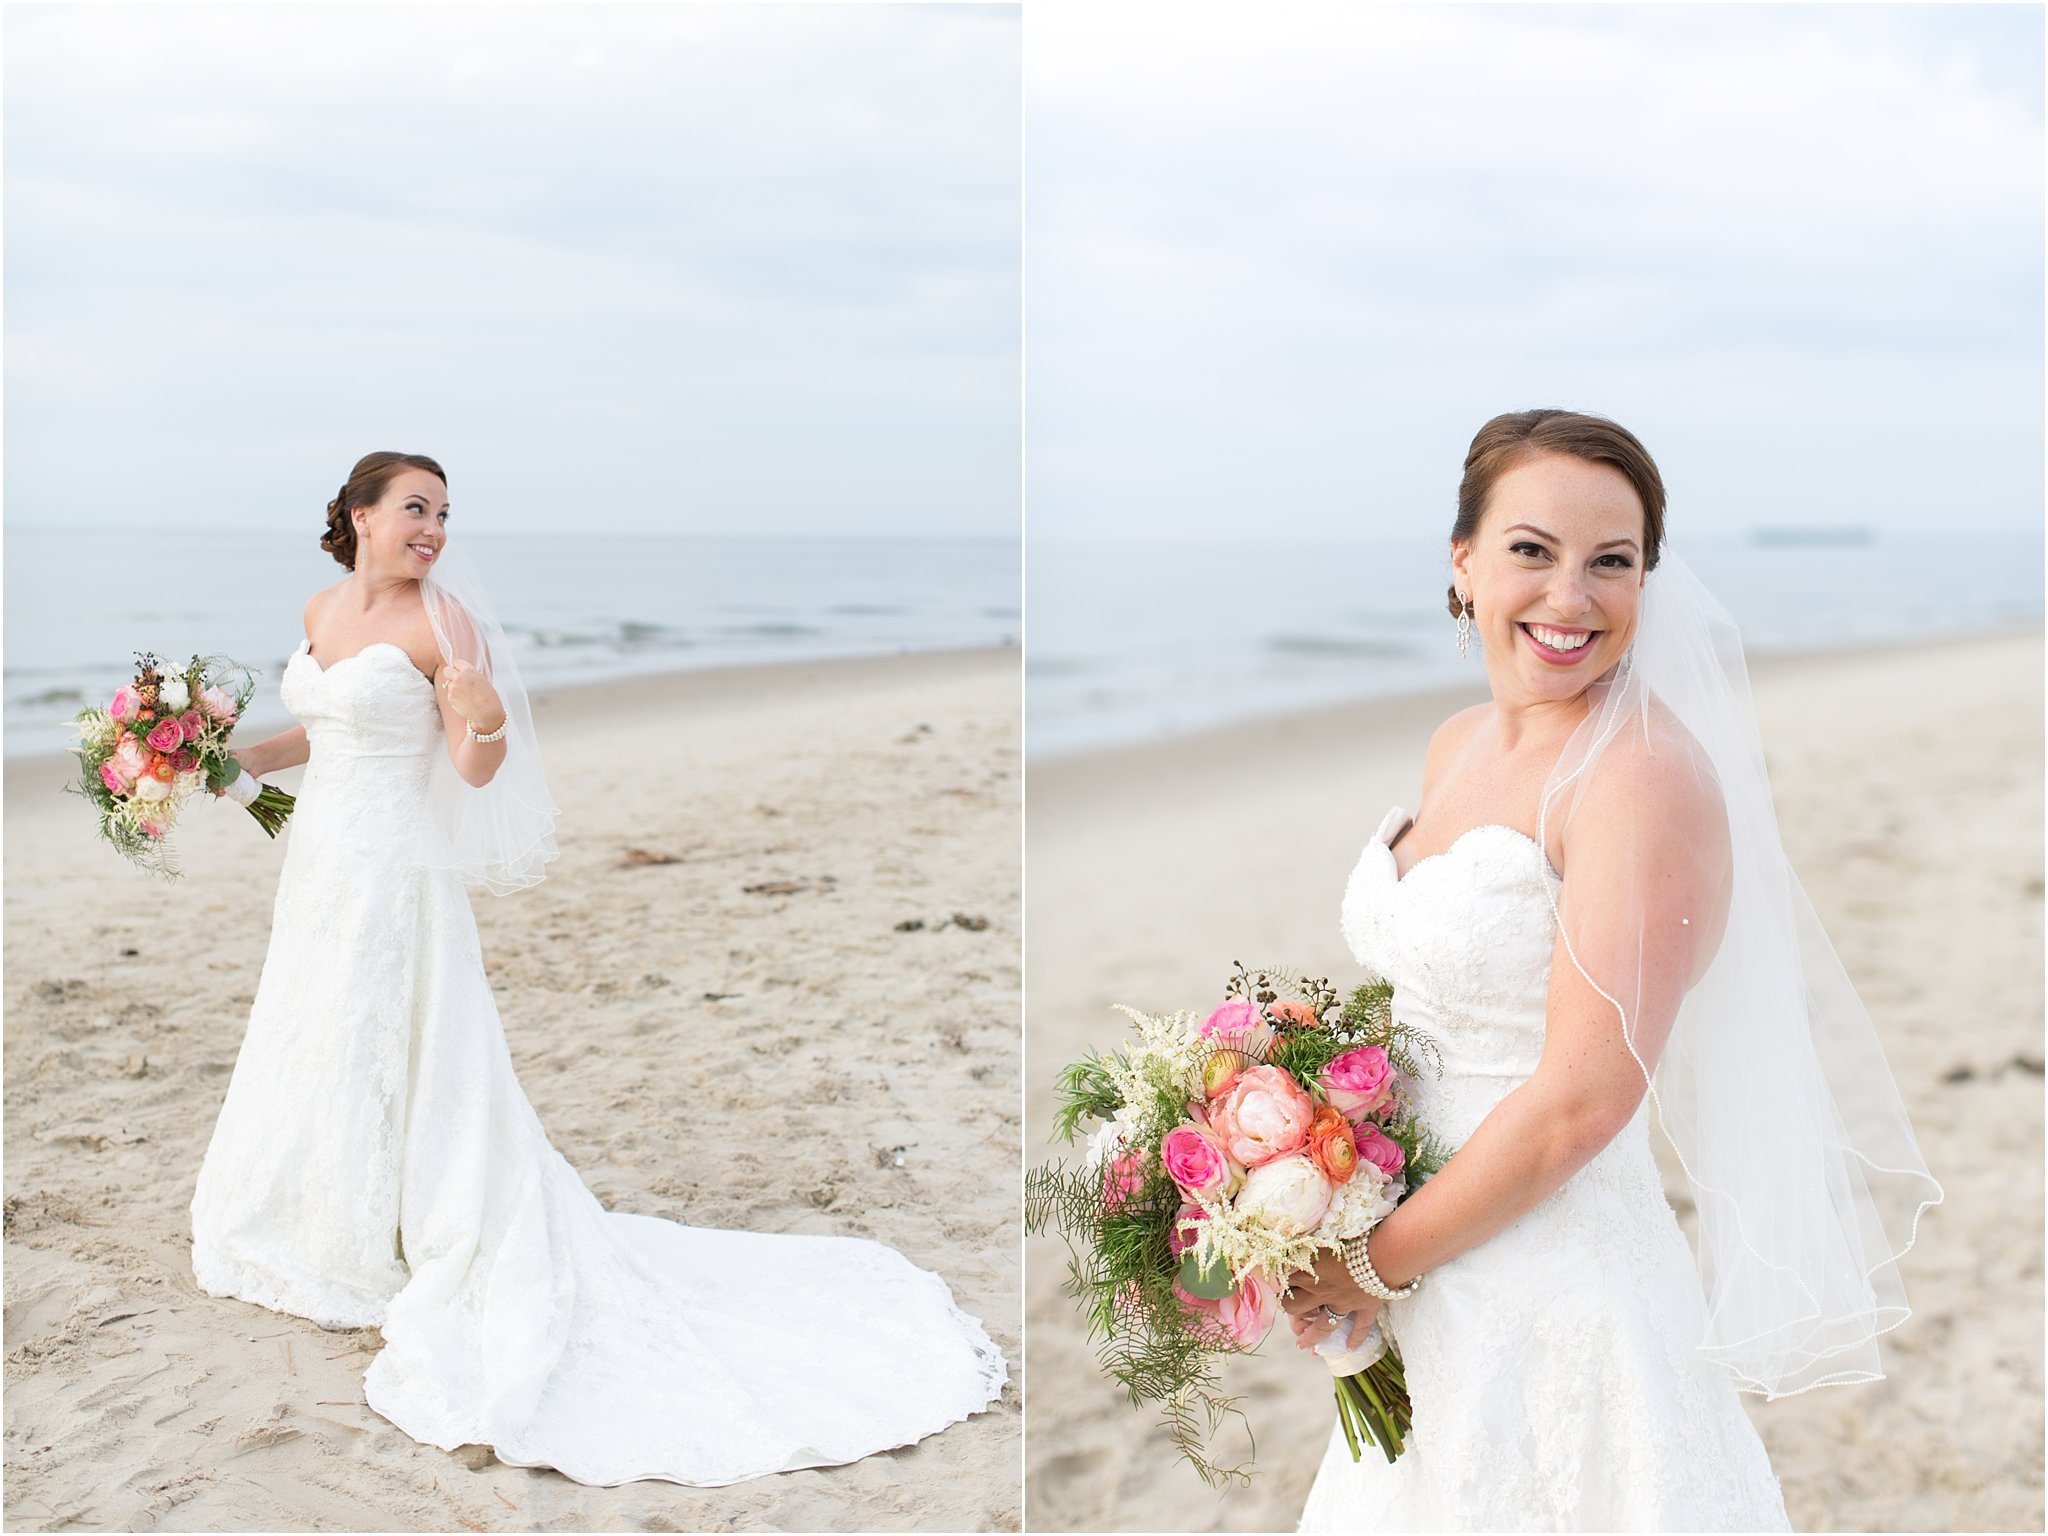 jessica_ryan_photography_wedding_photography_virginiabeach_virginia_candid_authentic_wedding_portraits_marina_shores_yacht_club_chesapeake_bay_1877